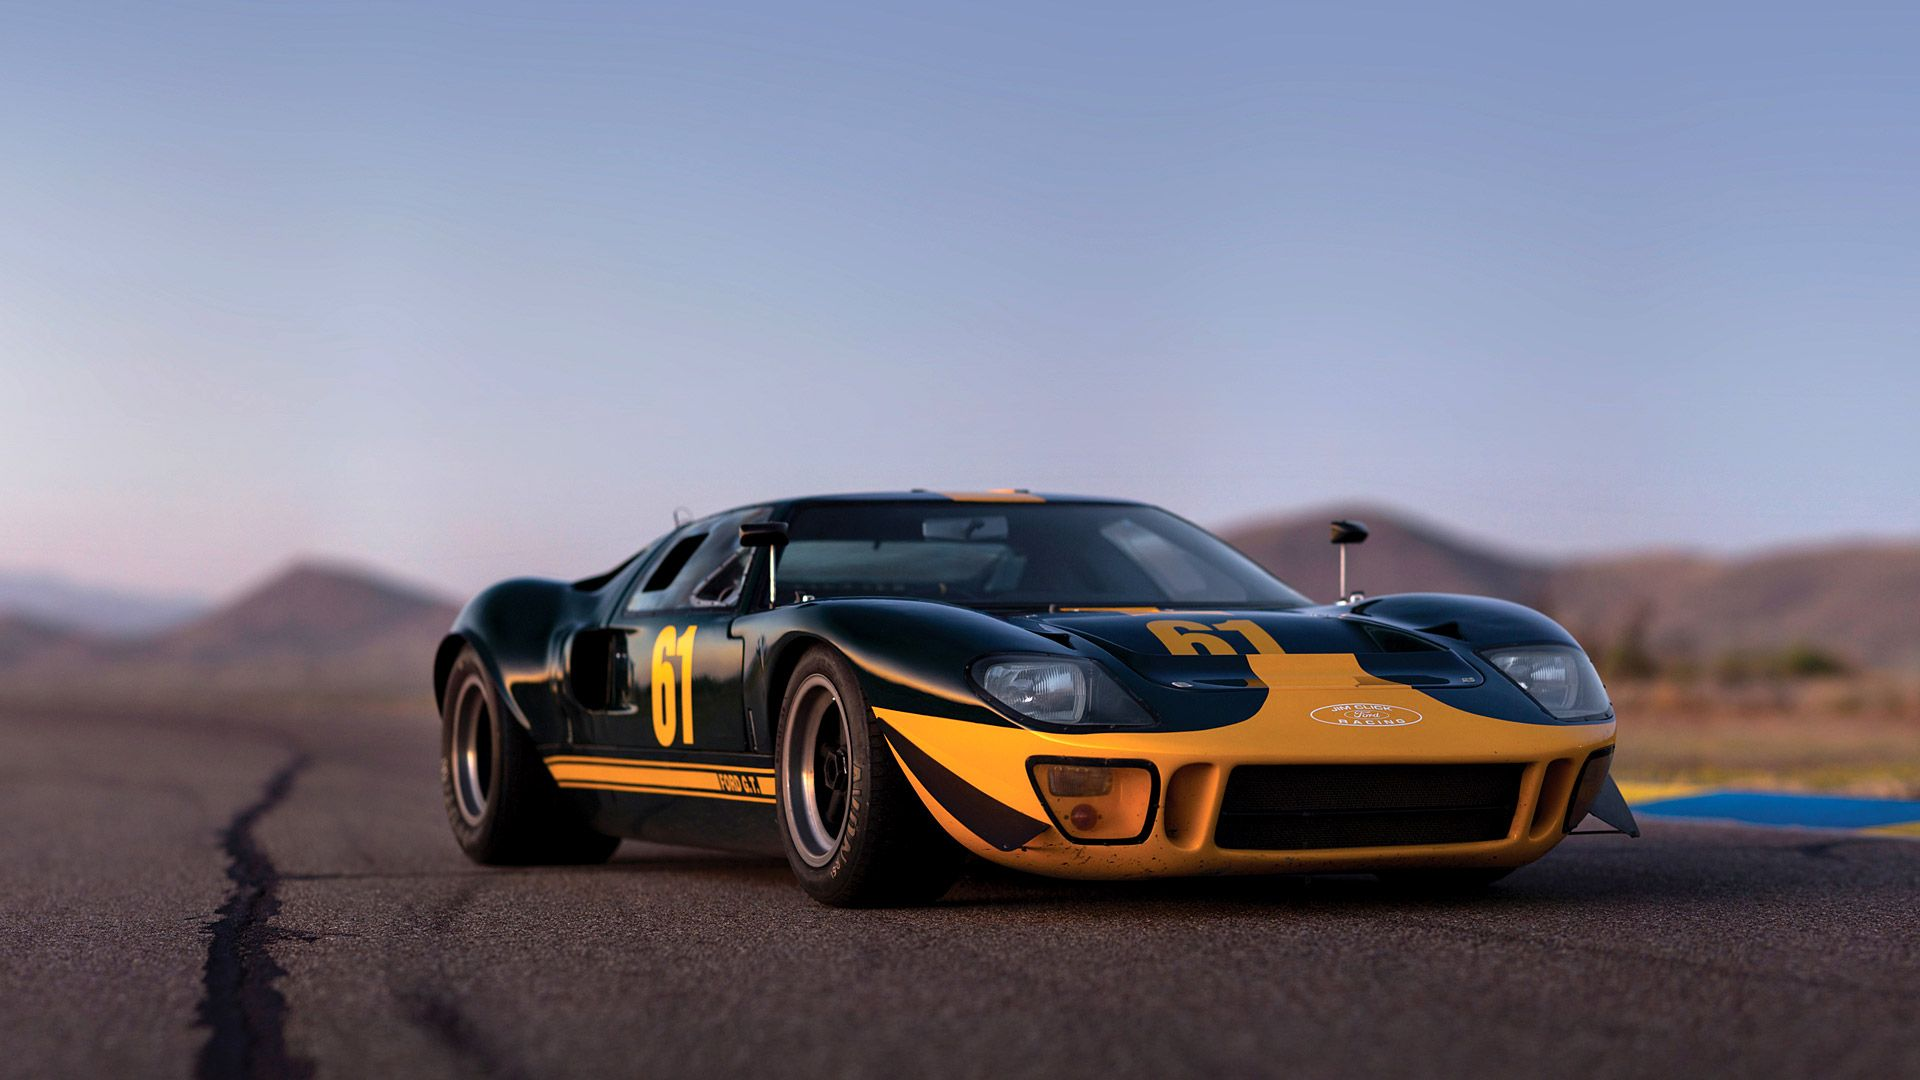 Pin By Curtis Baxter On Cars Ford Gt40 Ford Gt Le Mans Ford Gt